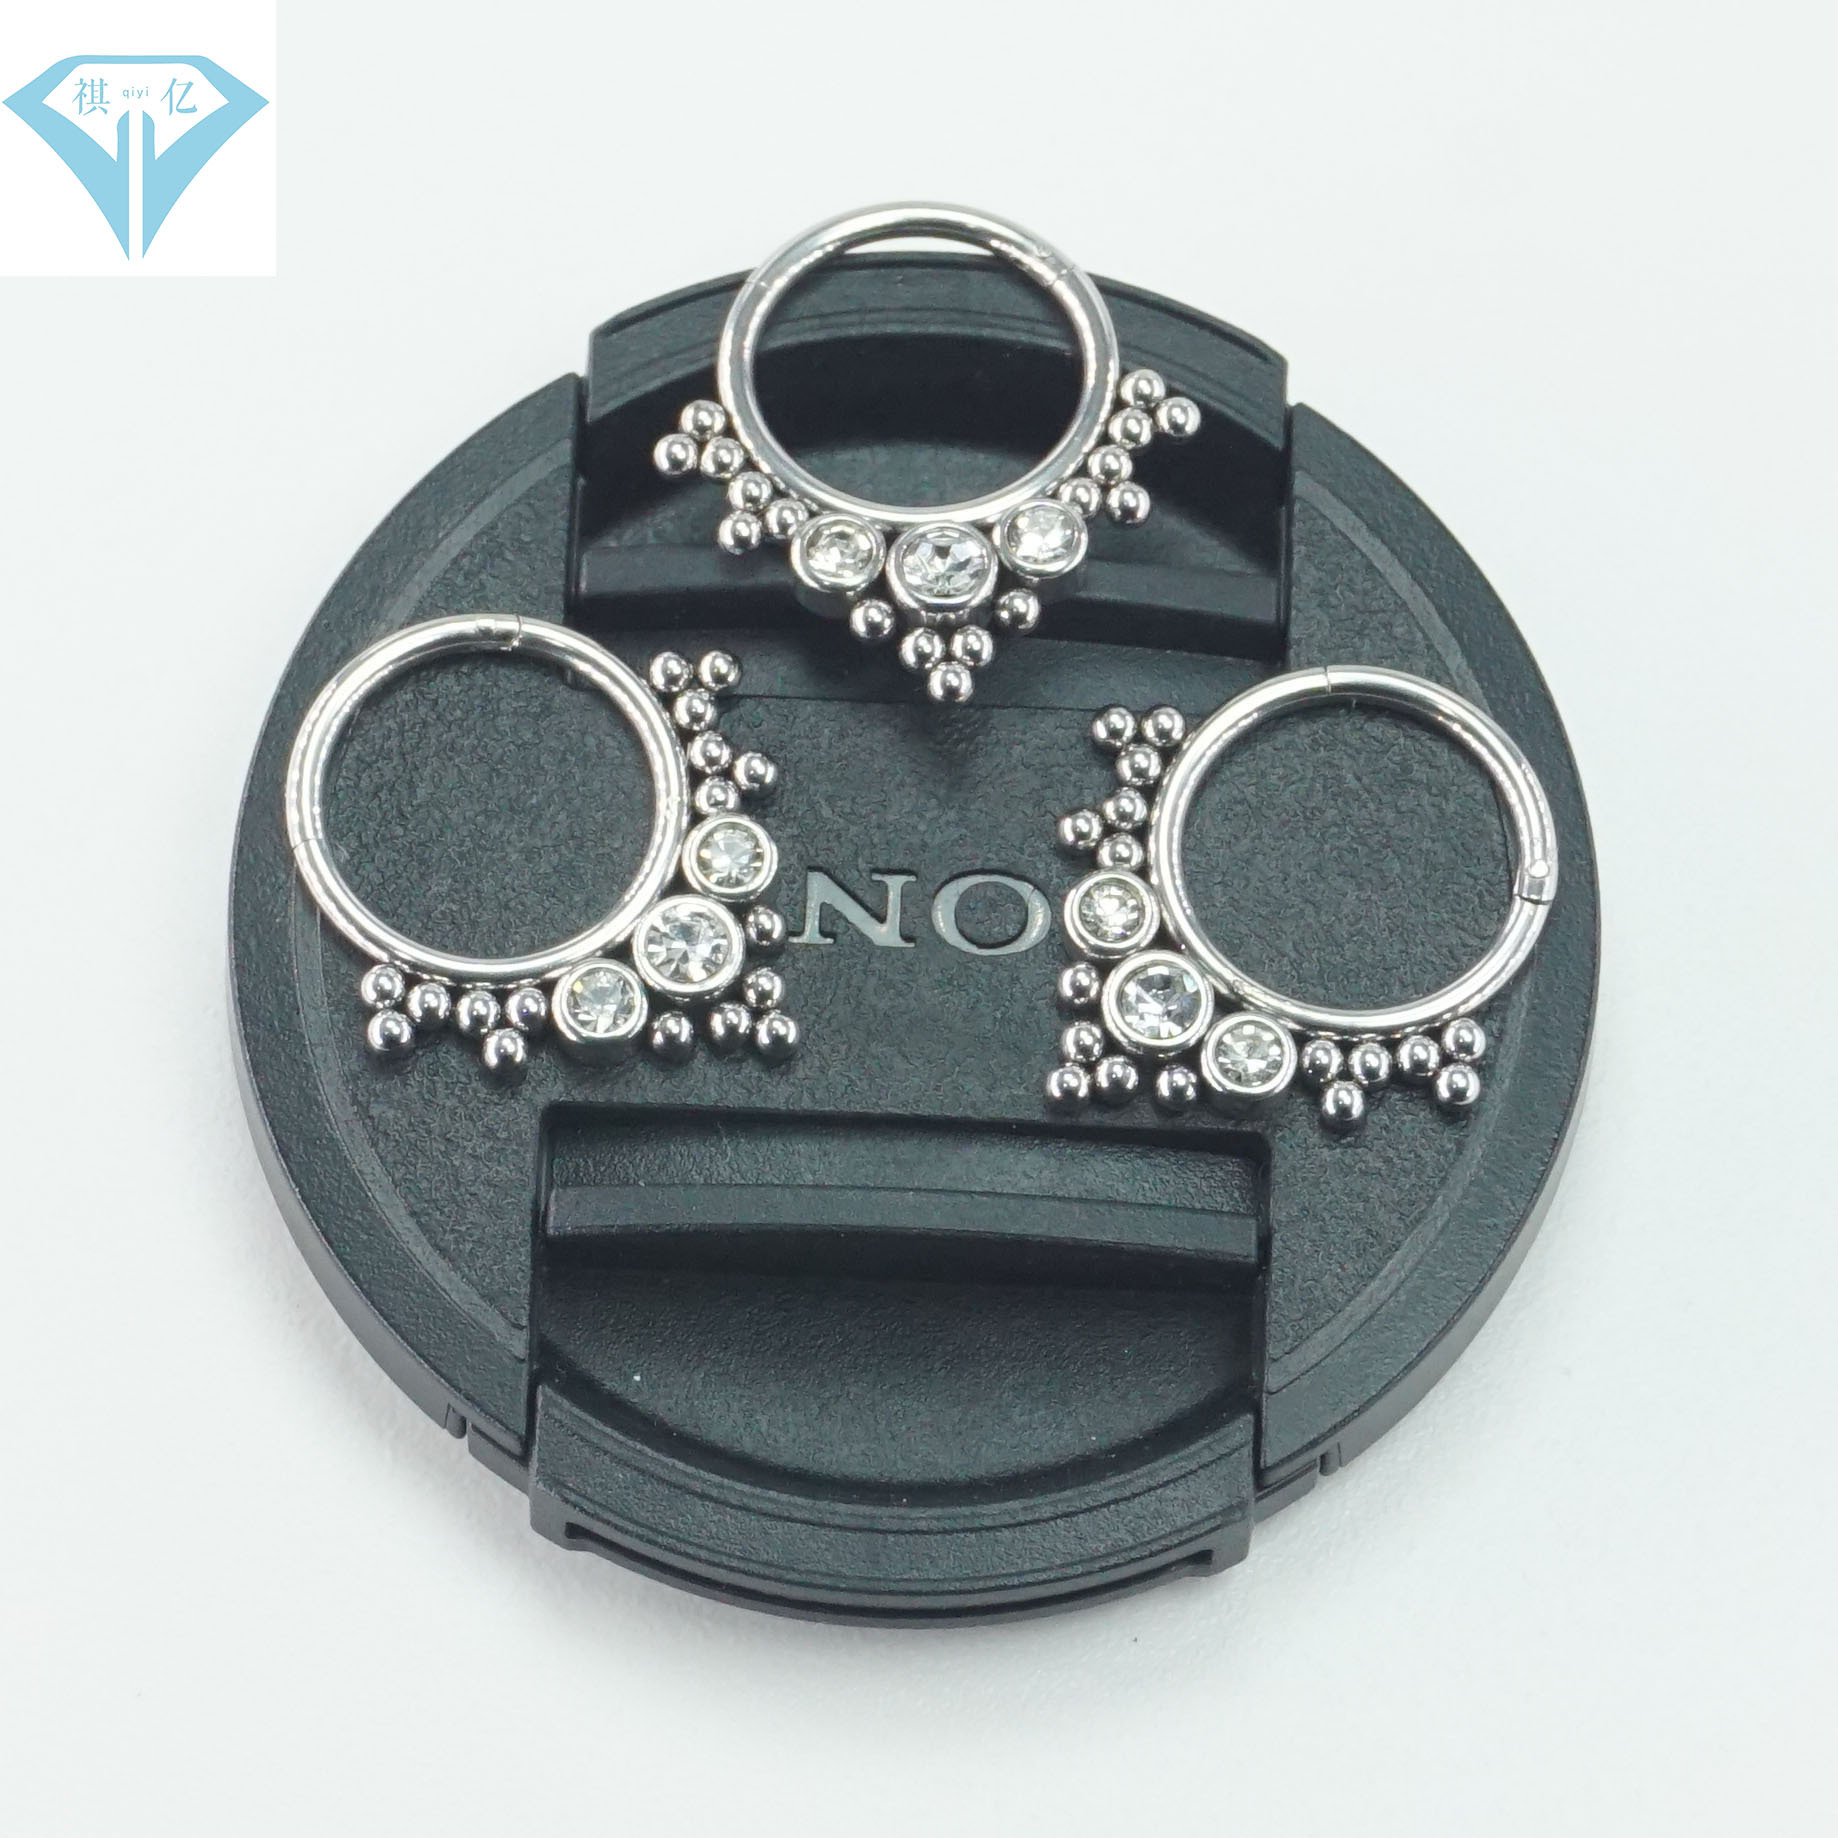 Glamorous Stainless Steel Rings for Night Out with Friends